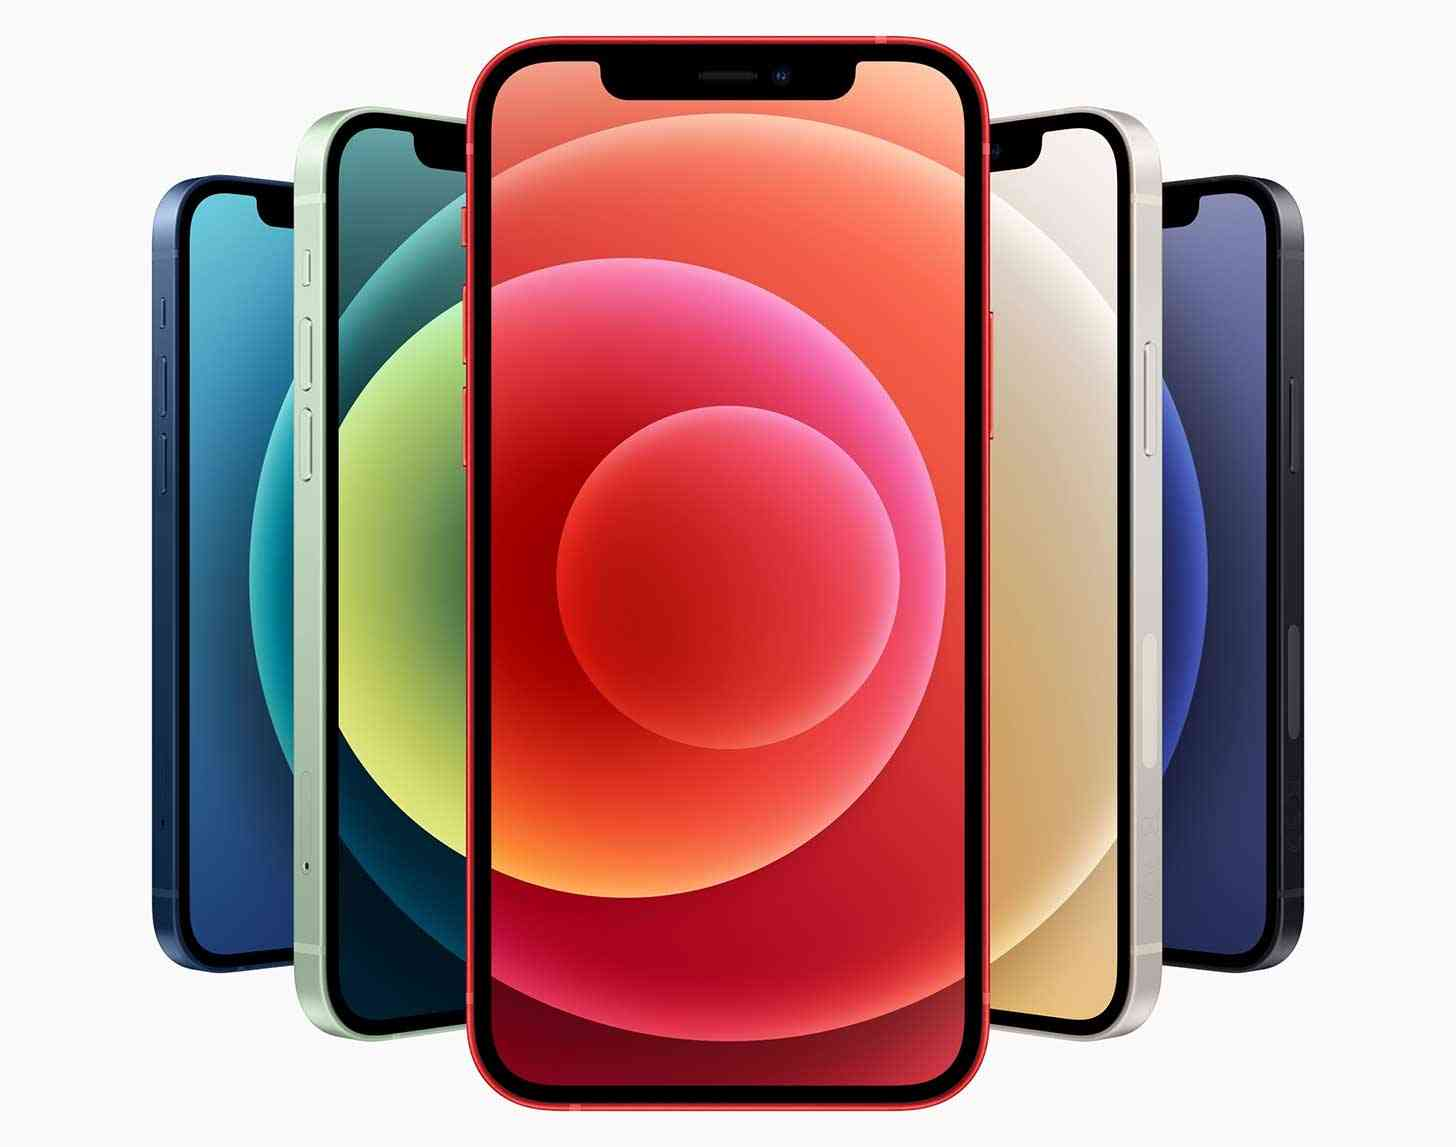 iPhone 12 colors official